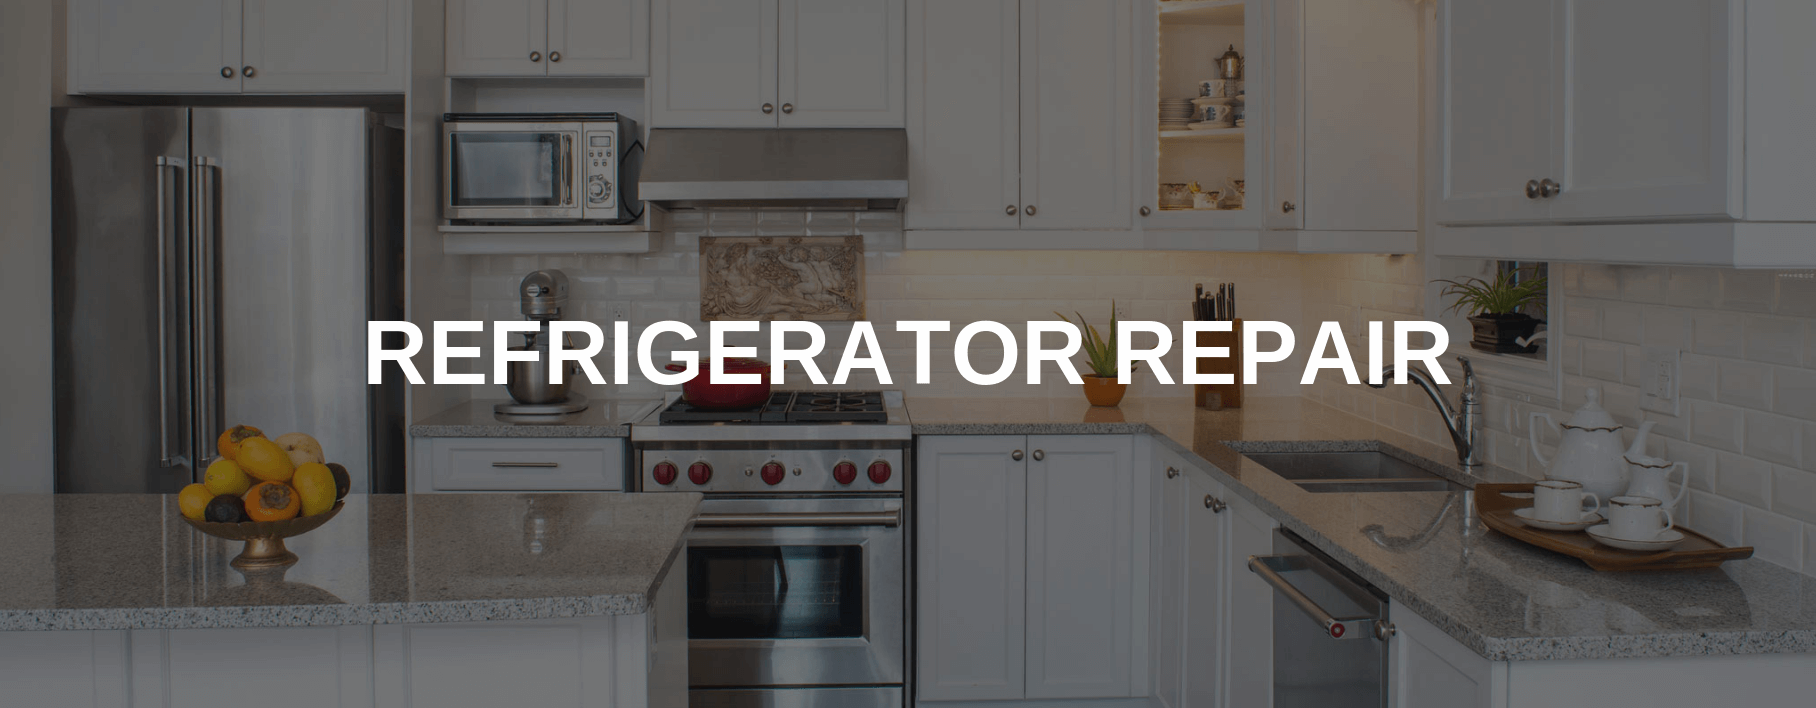 cypress refrigerator repair